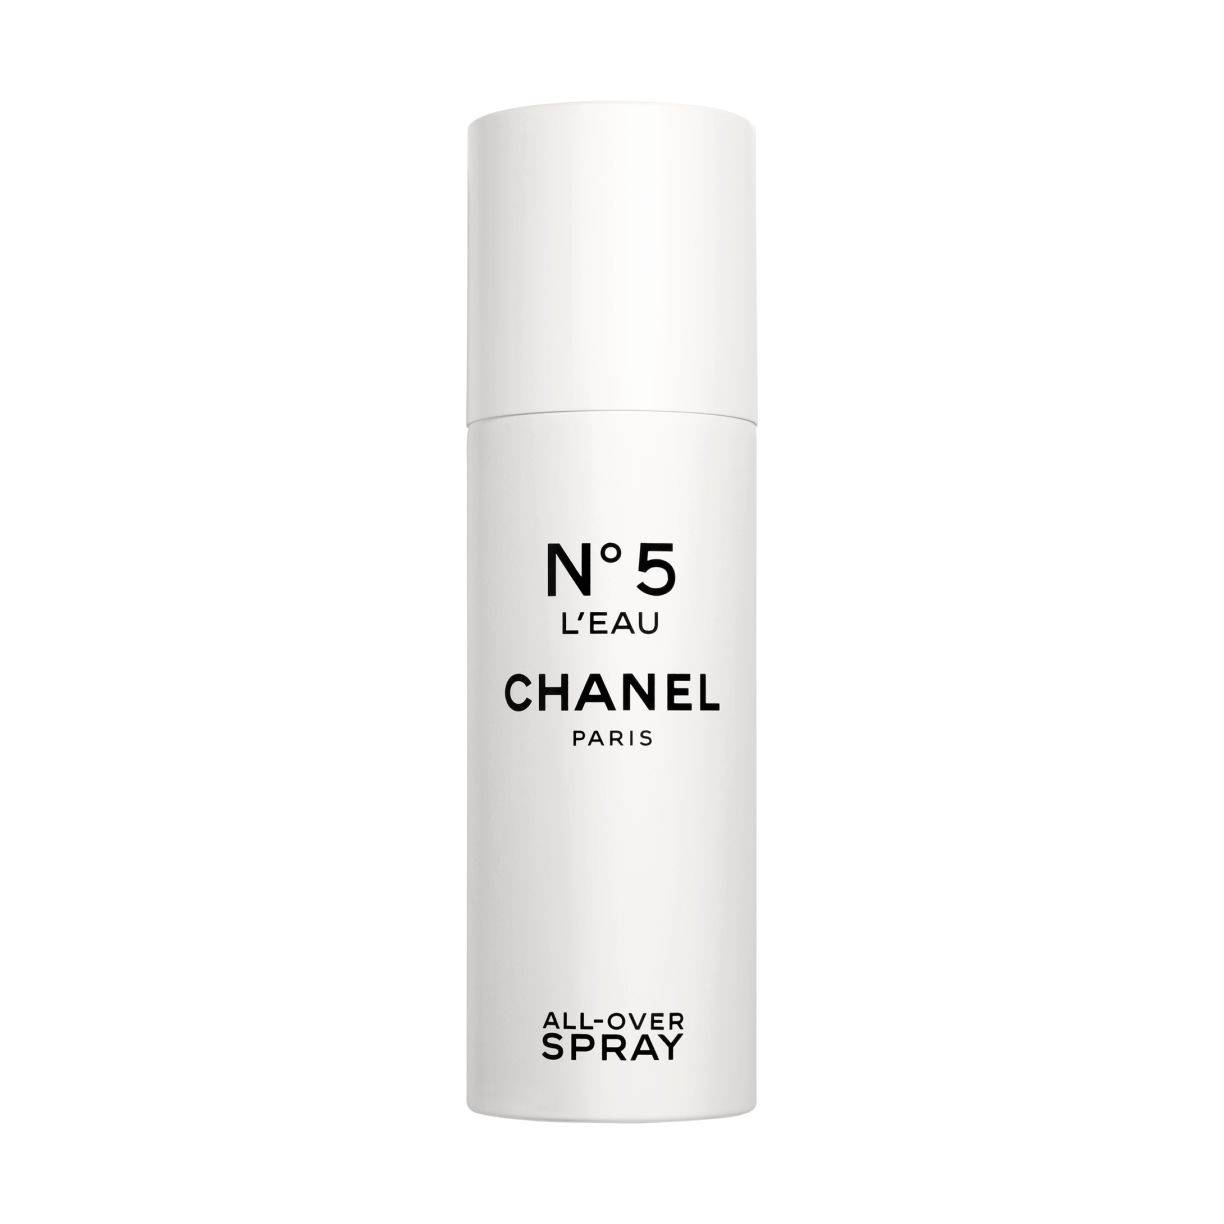 N°5 L'EAU N°5 L'EAU ALL-OVER SPRAY